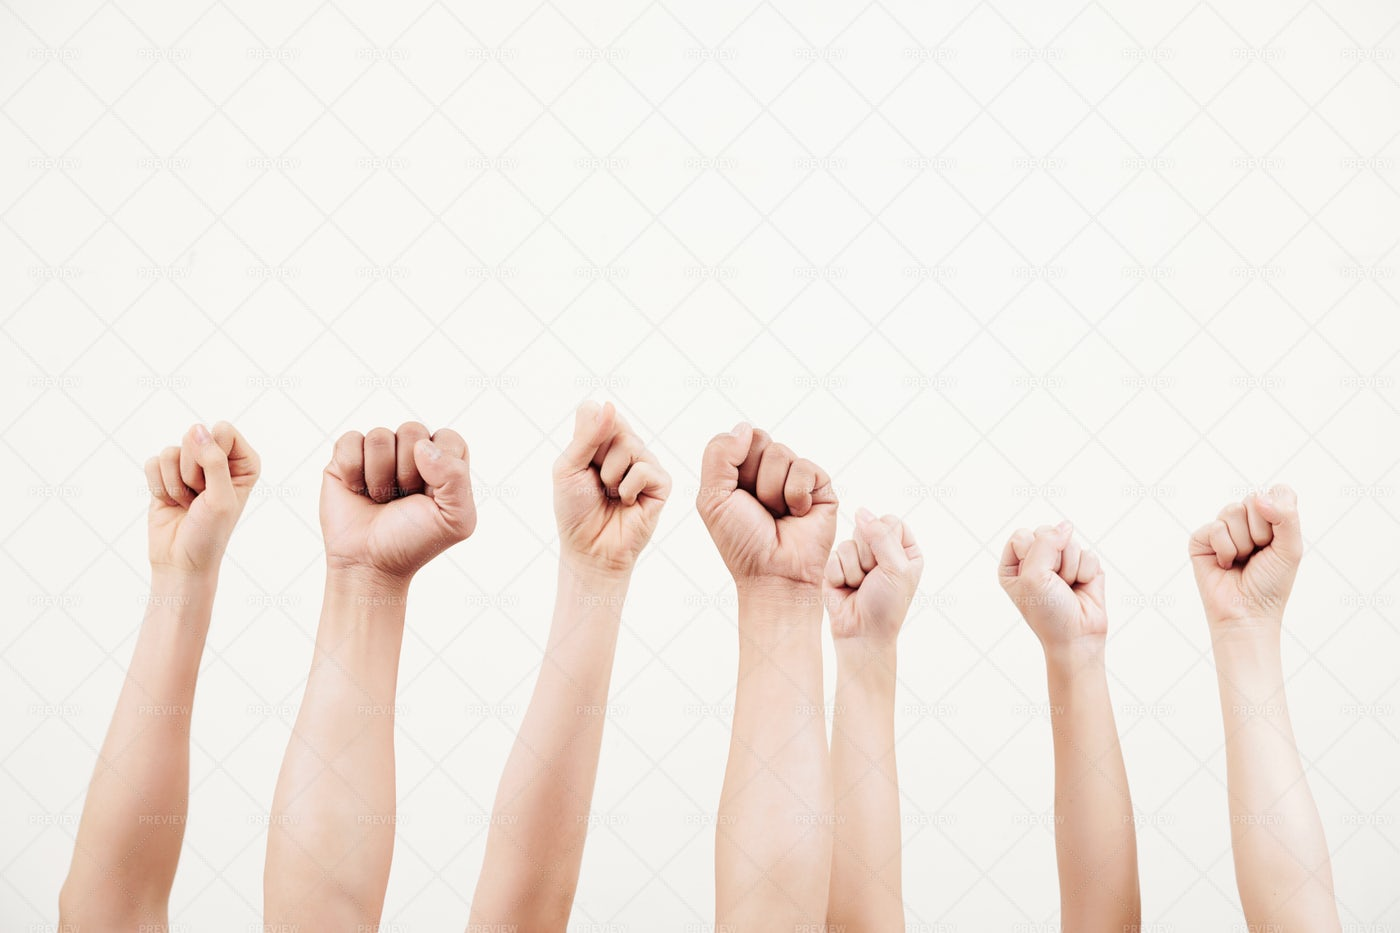 Business People Showing Power: Stock Photos